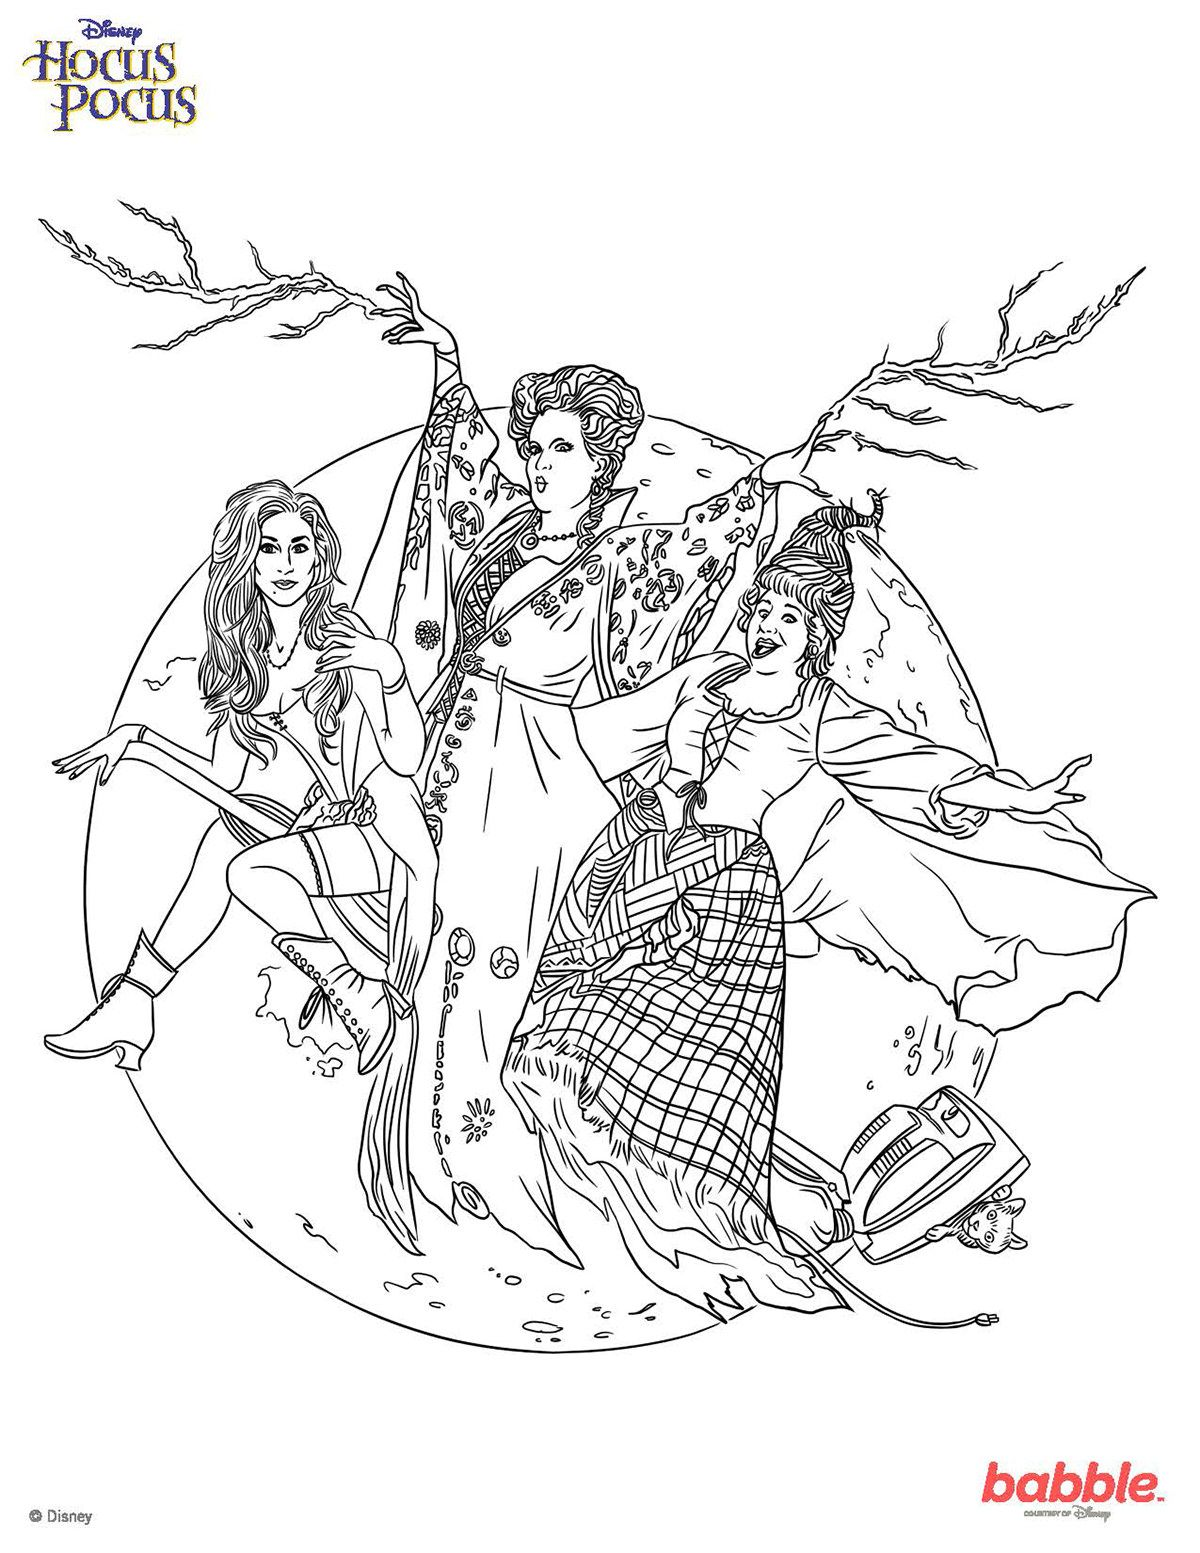 Image Result For Hocus Pocus Coloring Pages Witch Coloring Pages Coloring Pages Halloween Coloring Pages